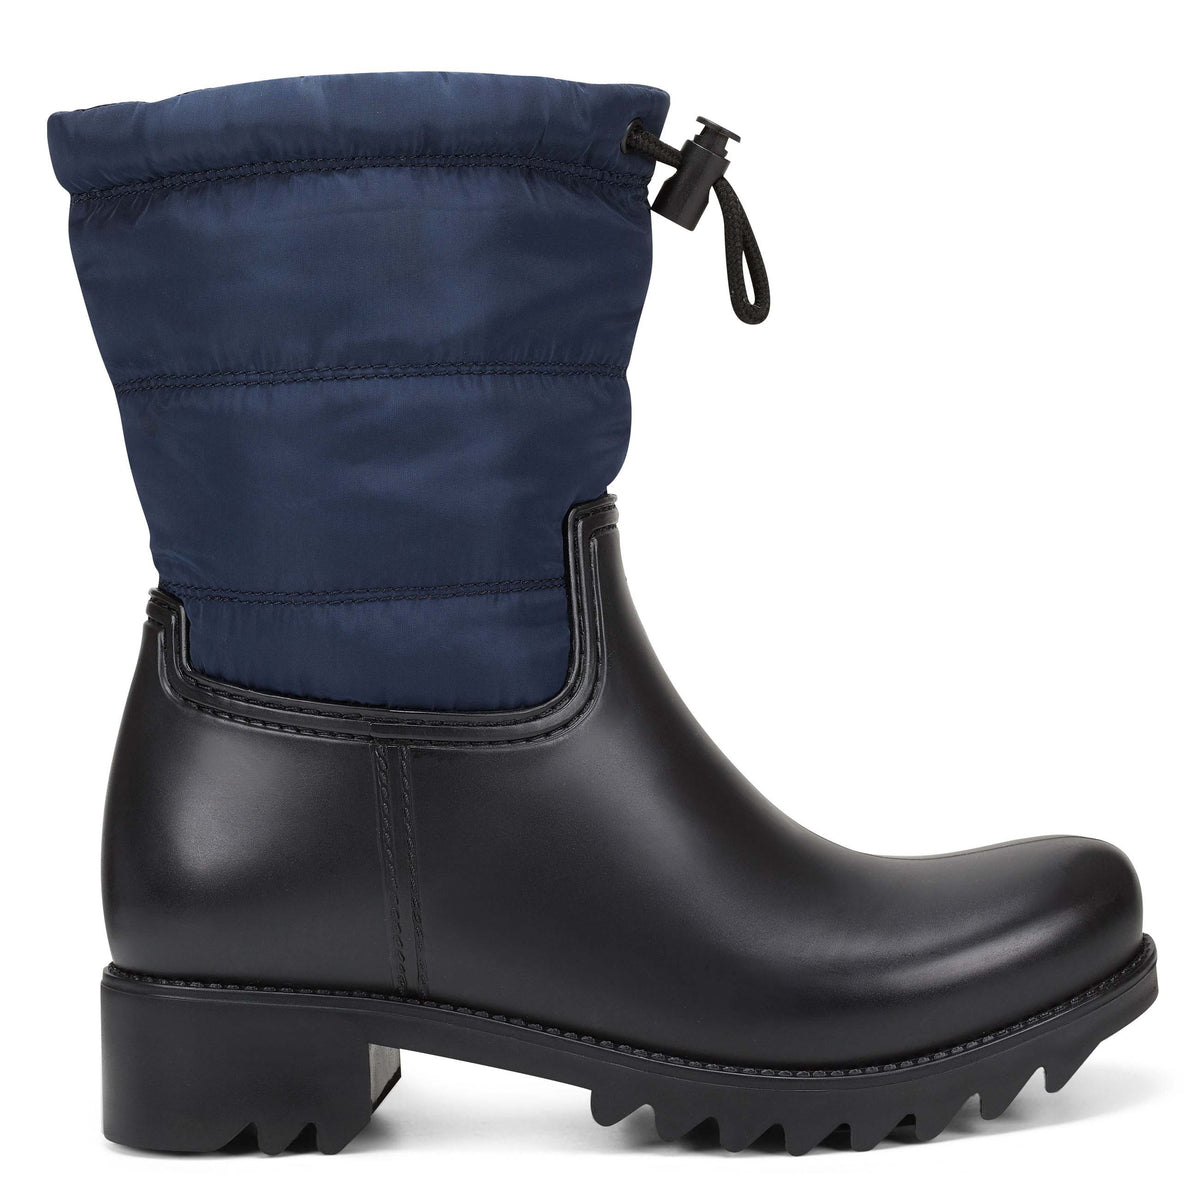 Kalie casual boot